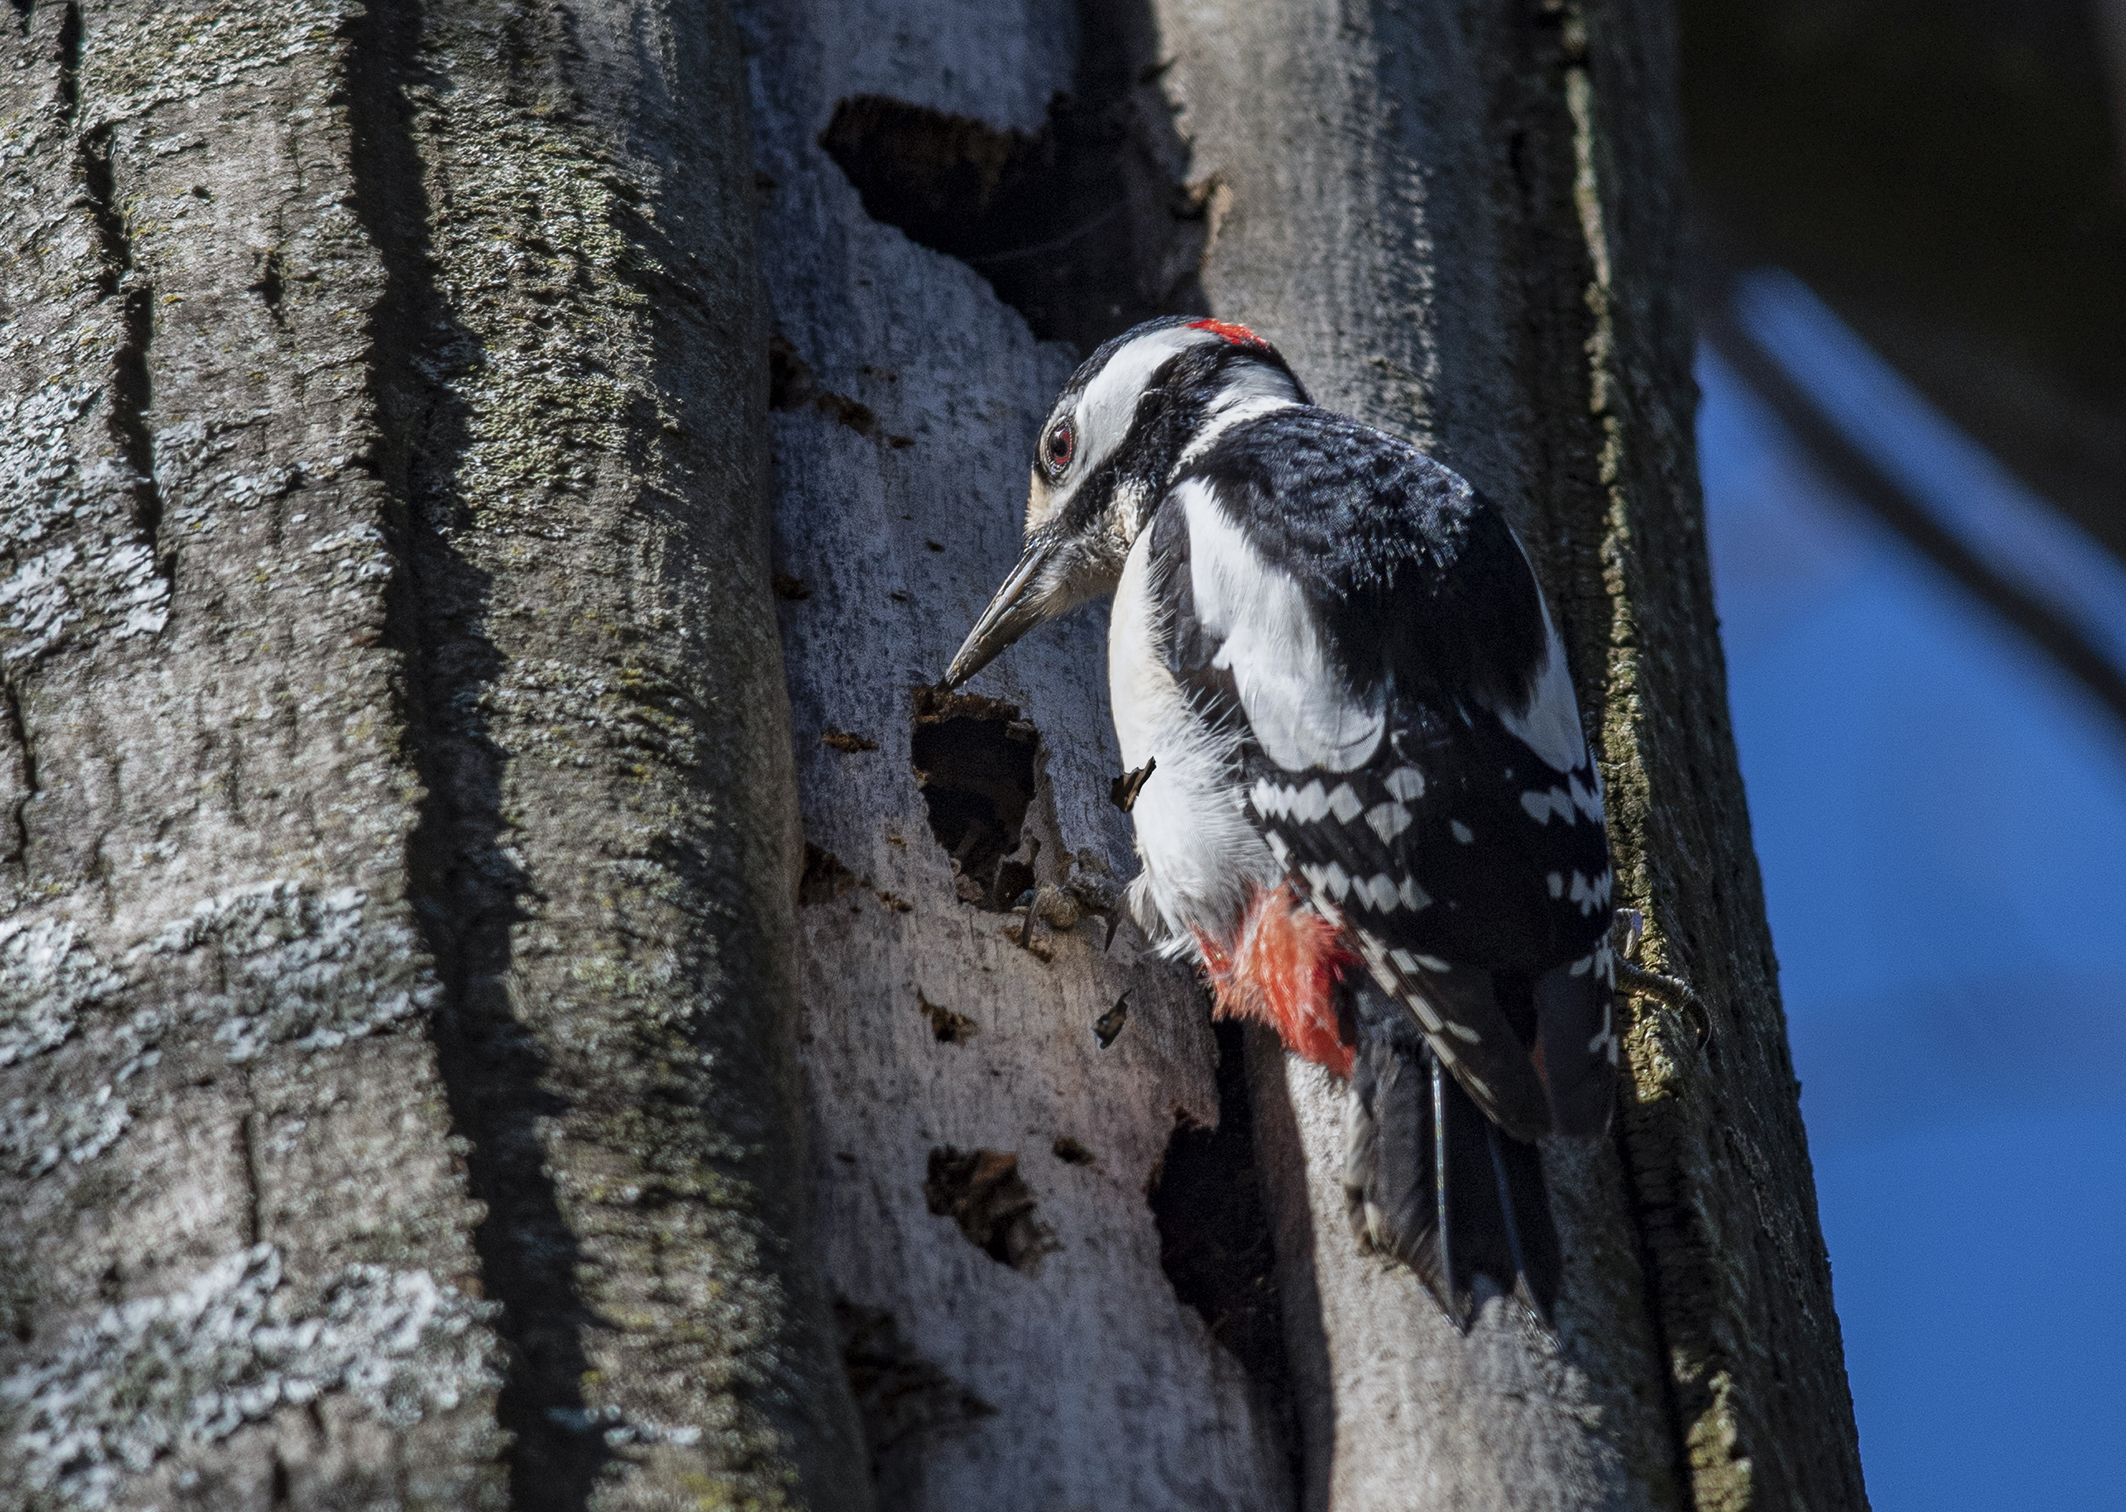 great spotted woodpecker at work...